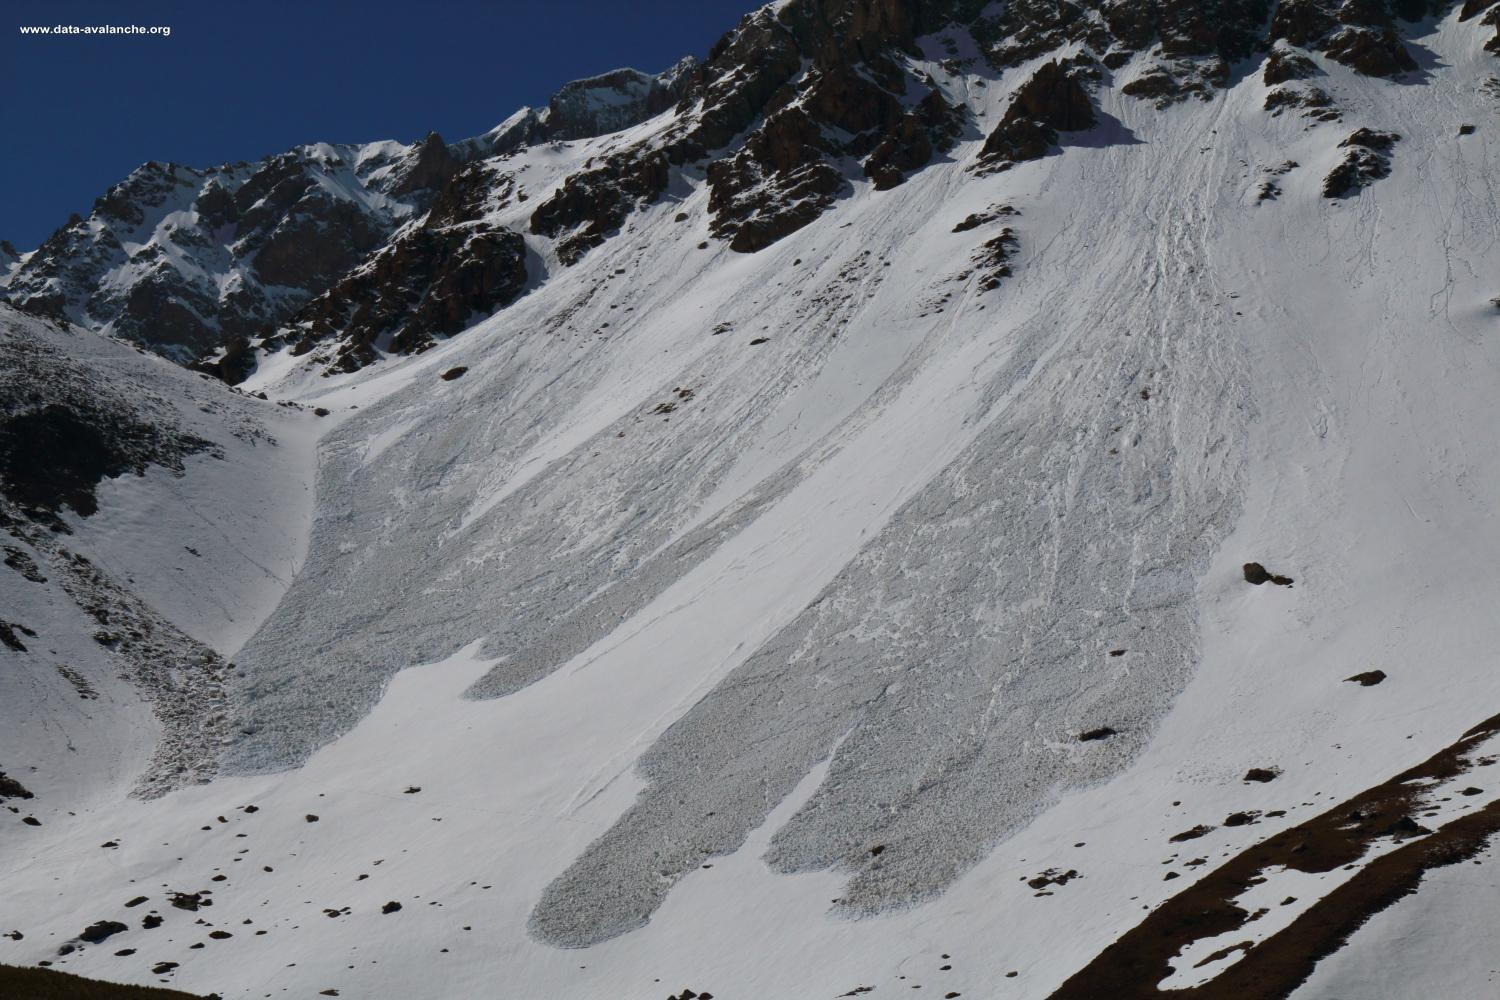 Avalanche Maurienne, secteur Grand Galibier, Pointe du Vallon - Plan Lachat - Photo 1 - © Duclos Alain